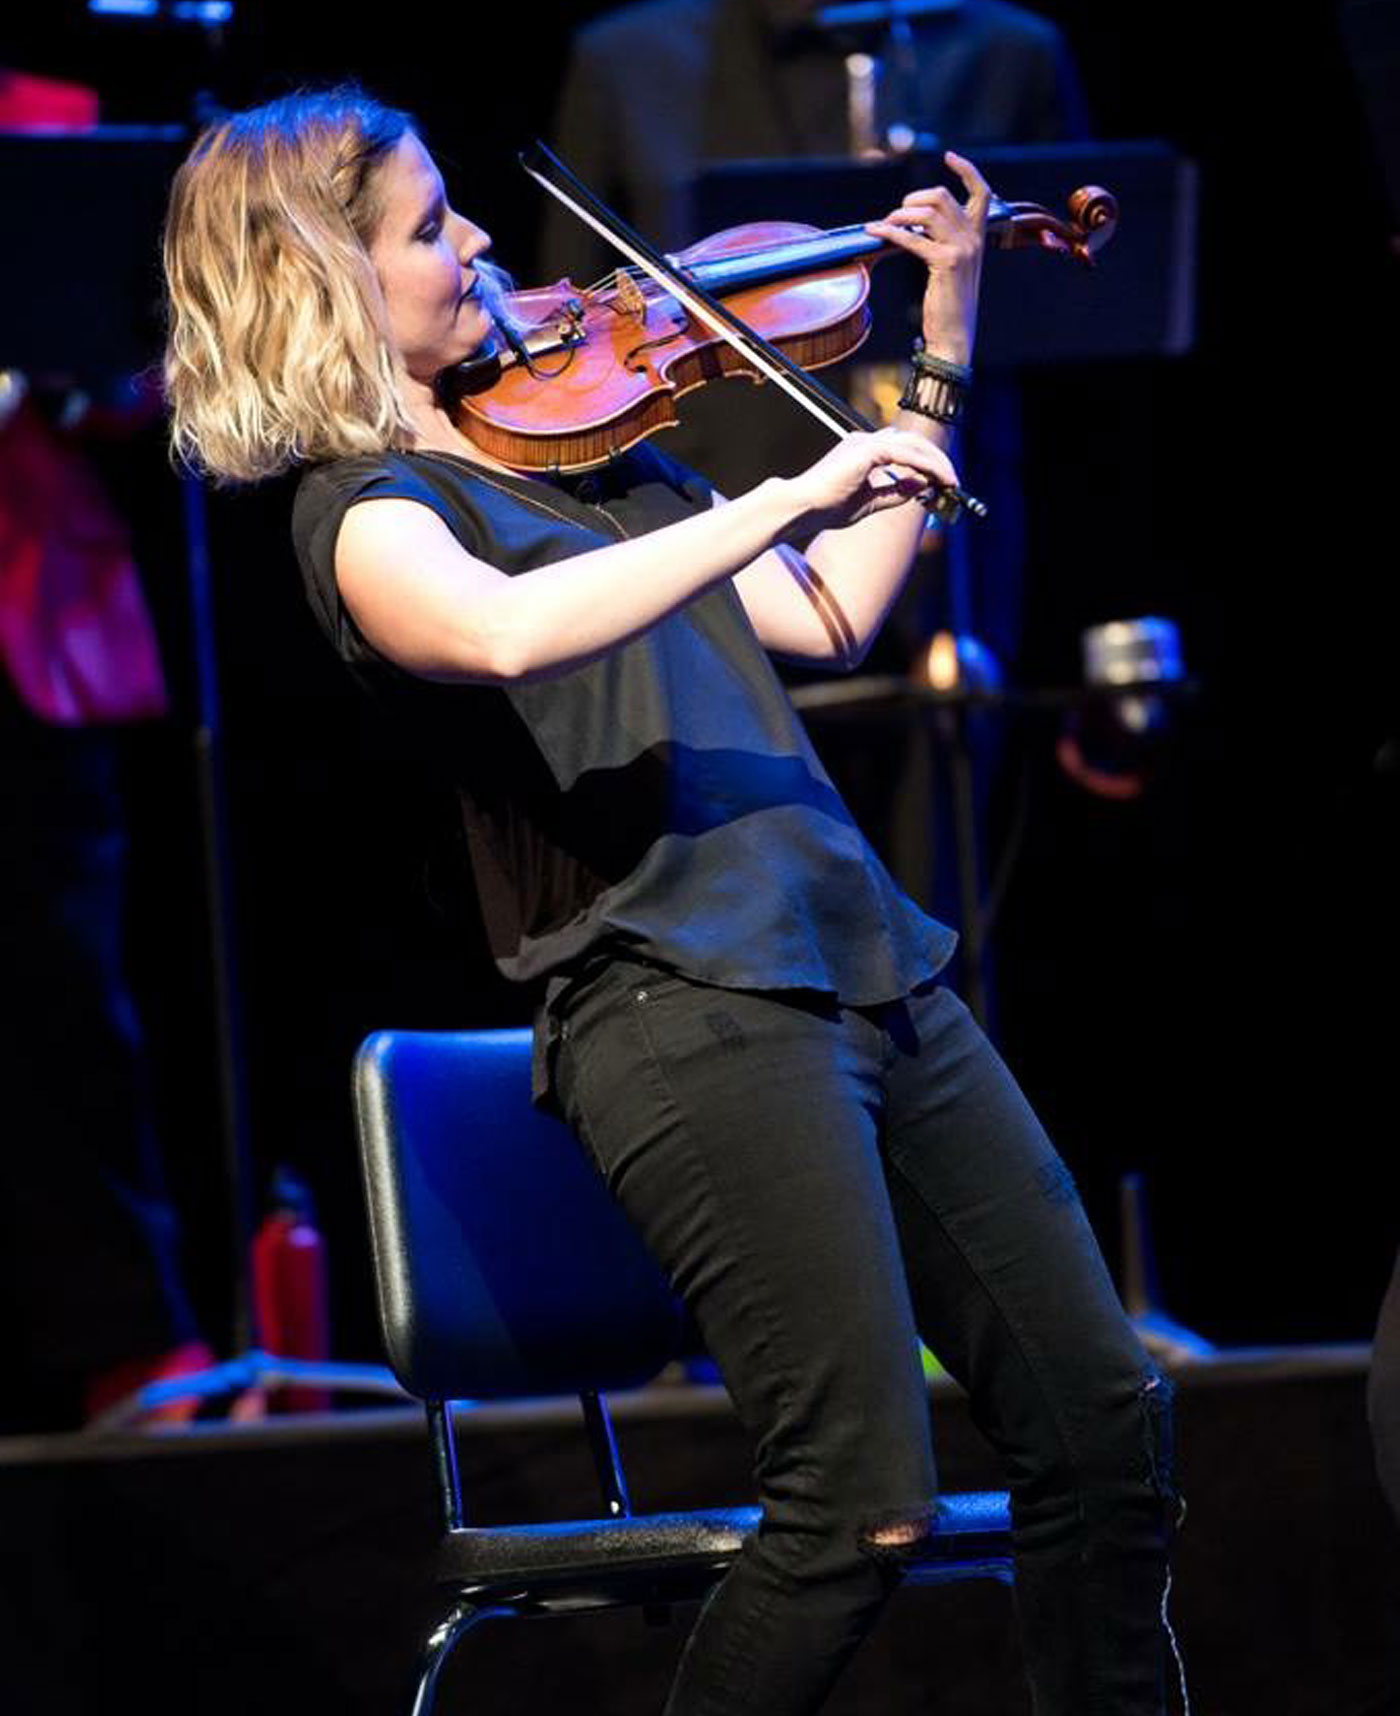 Rachel Nesvig plays a solo for Seattle Rock Orchestra